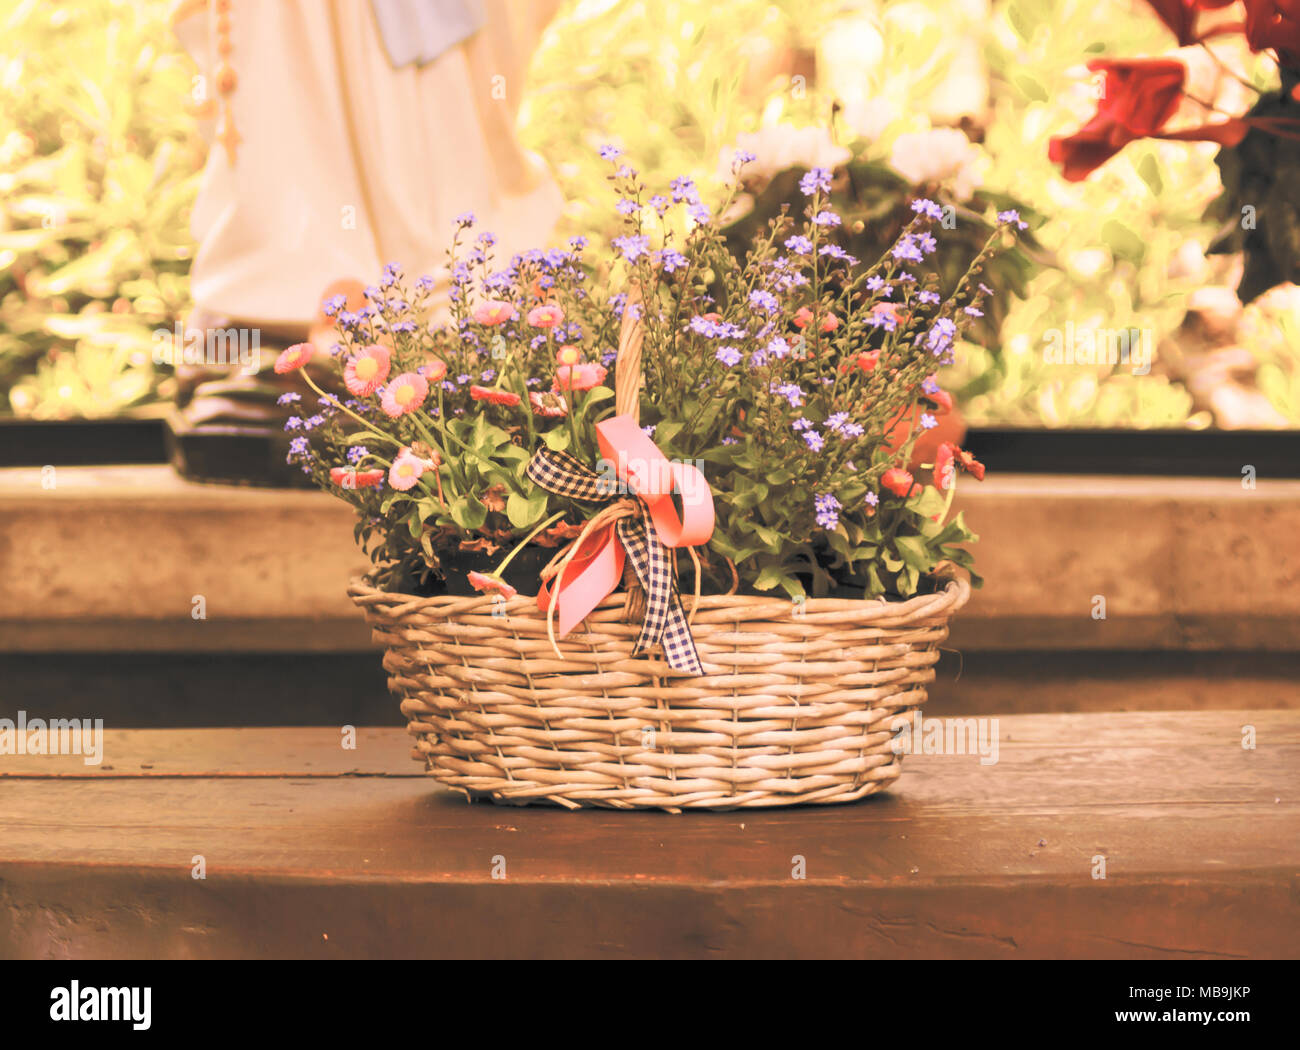 Wicker Basket With Bouquet Of Beautiful Flowers Background In A